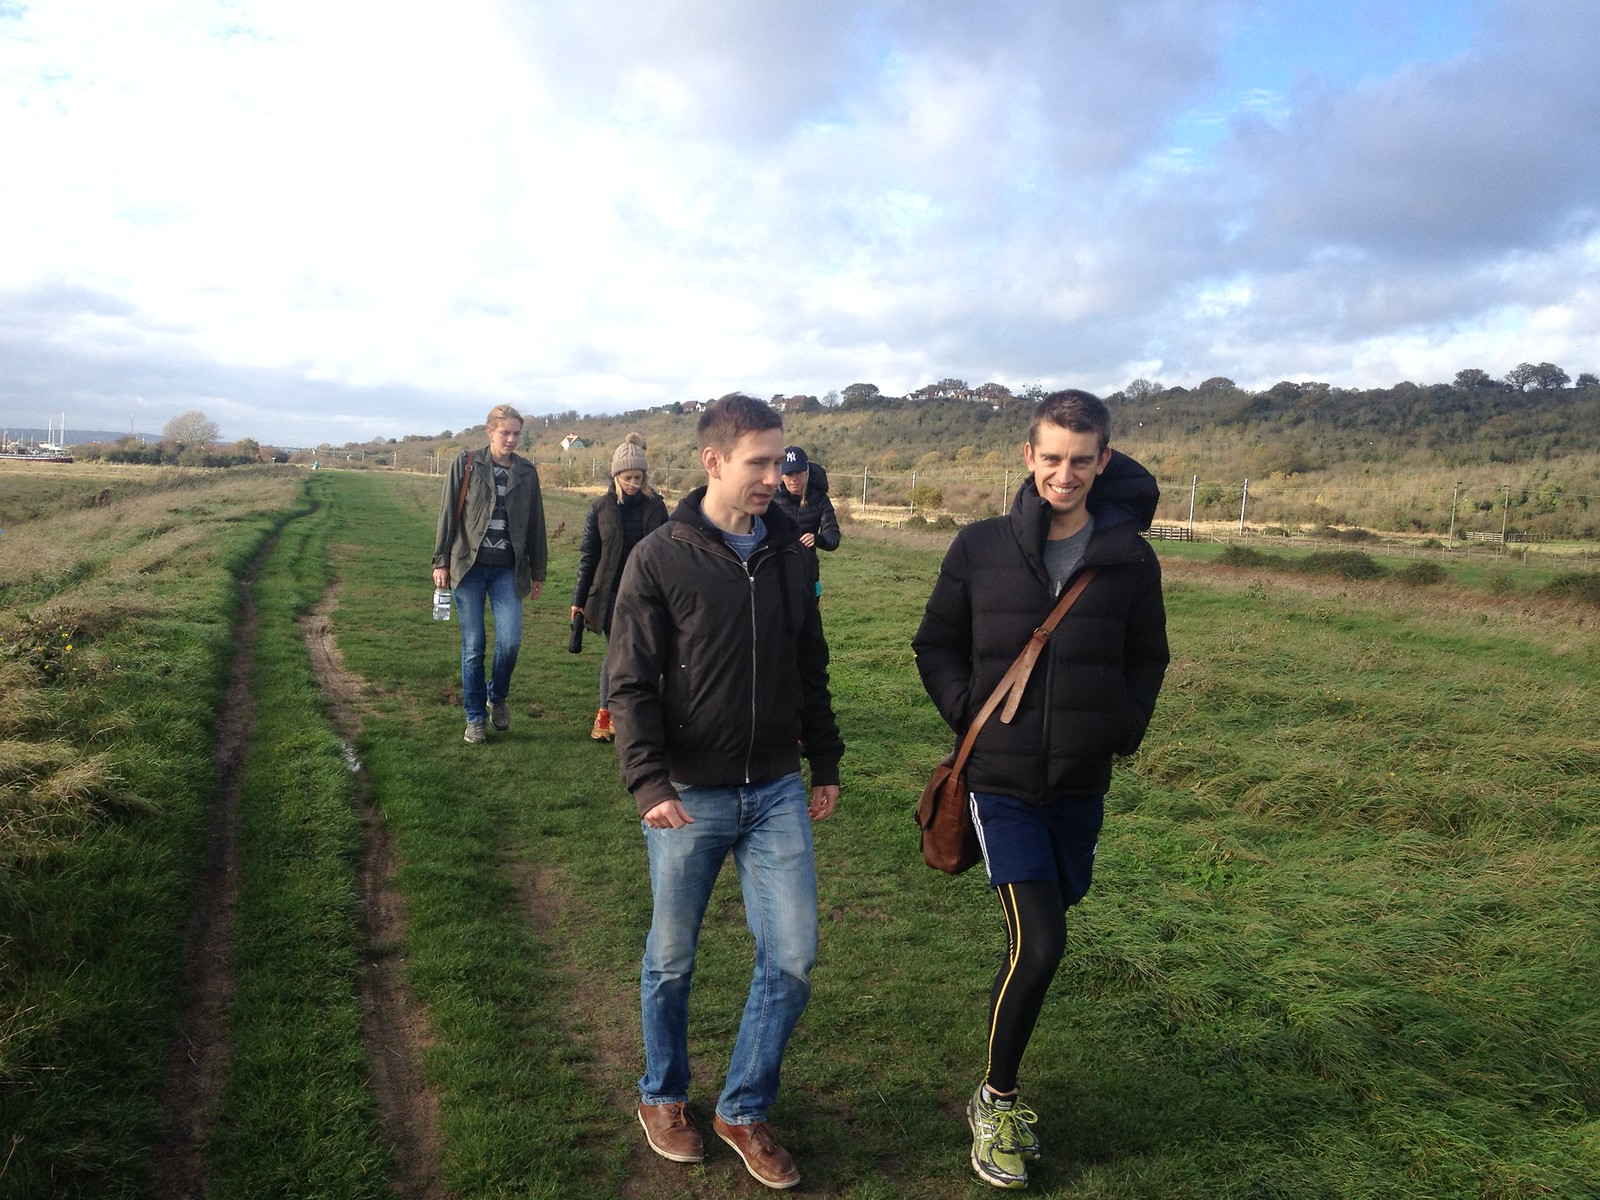 2015-11-15 12.27.20 Benfleet to Leigh-on-sea, Short Walk 14, Saturday Walkers Club